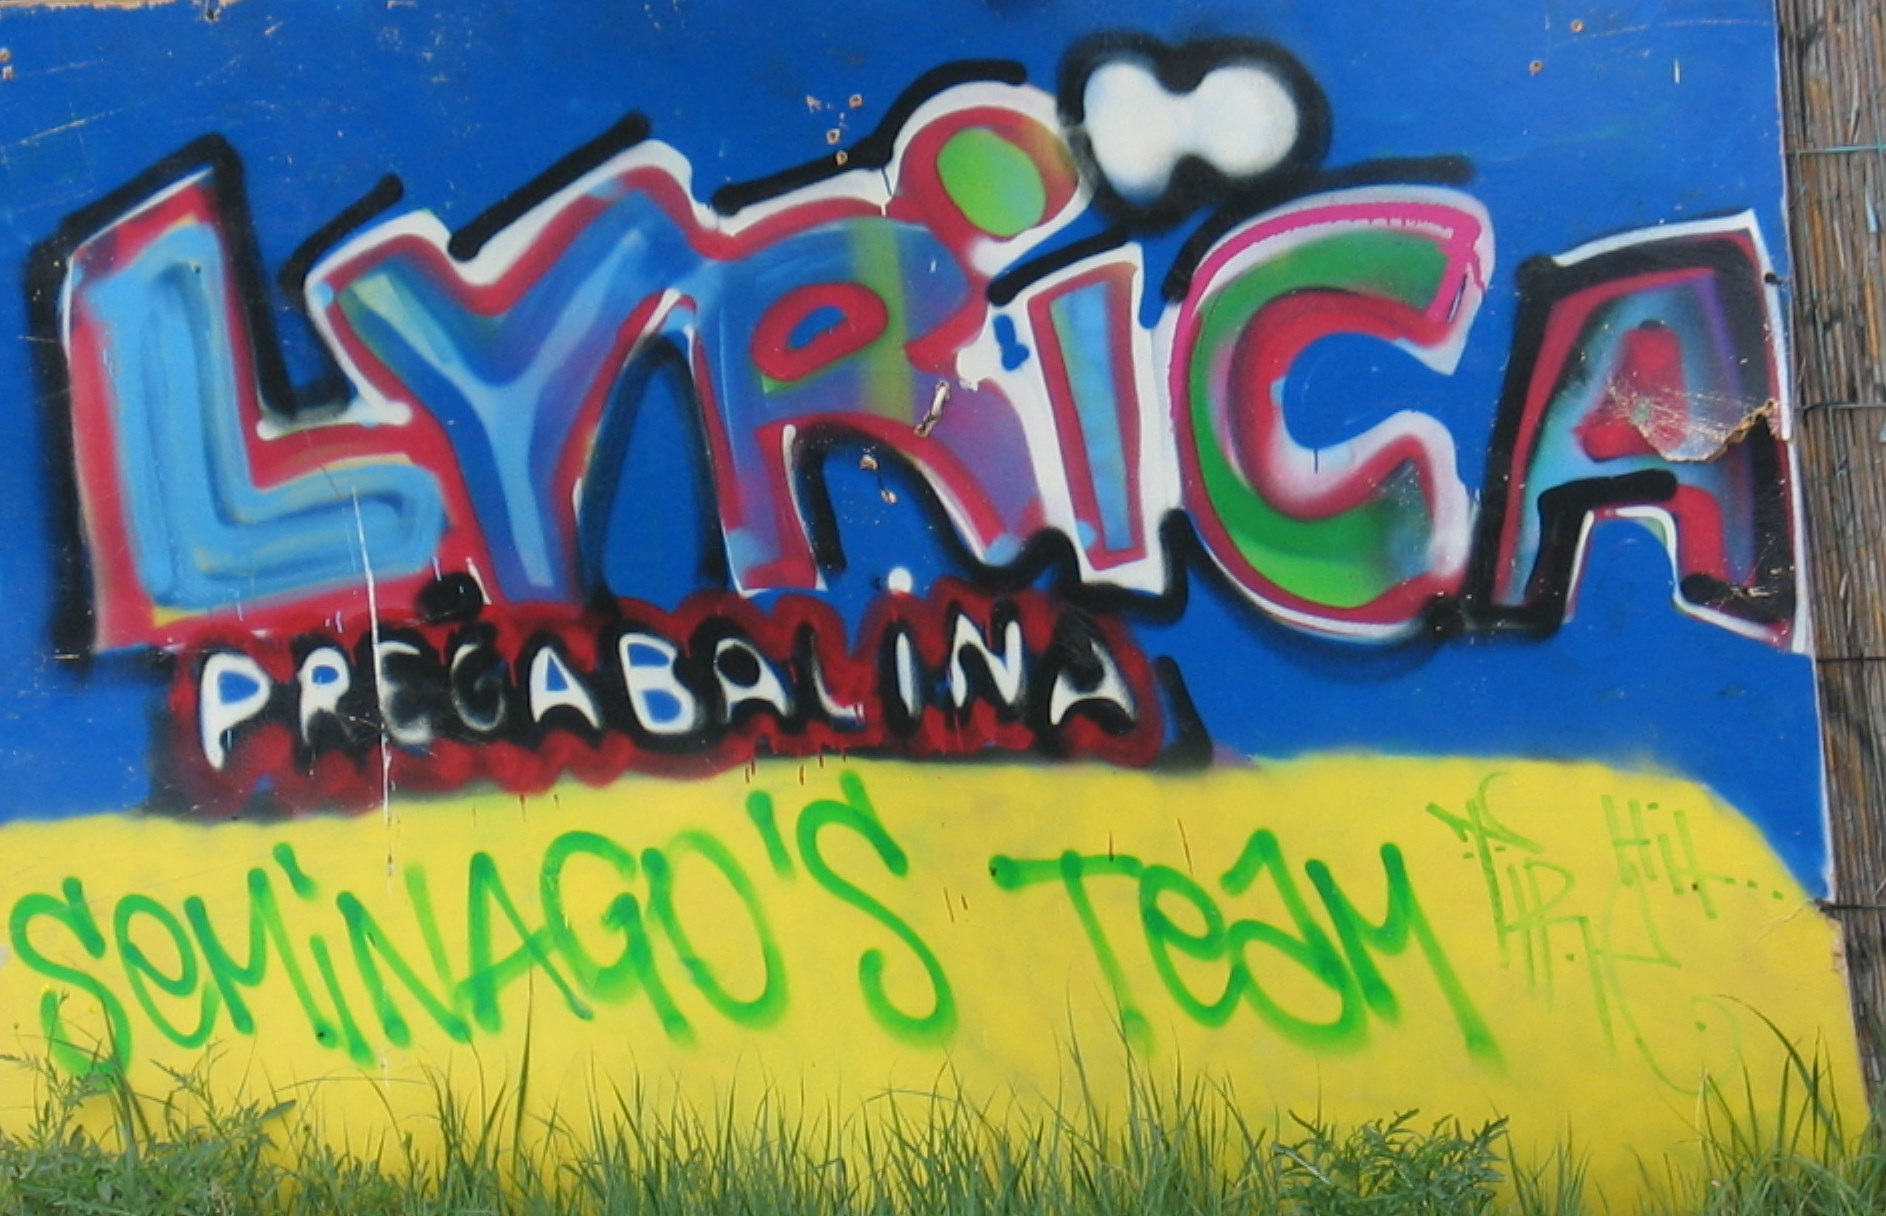 File:Lyrica Graffiti Berlin.JPG - Wikimedia Commons